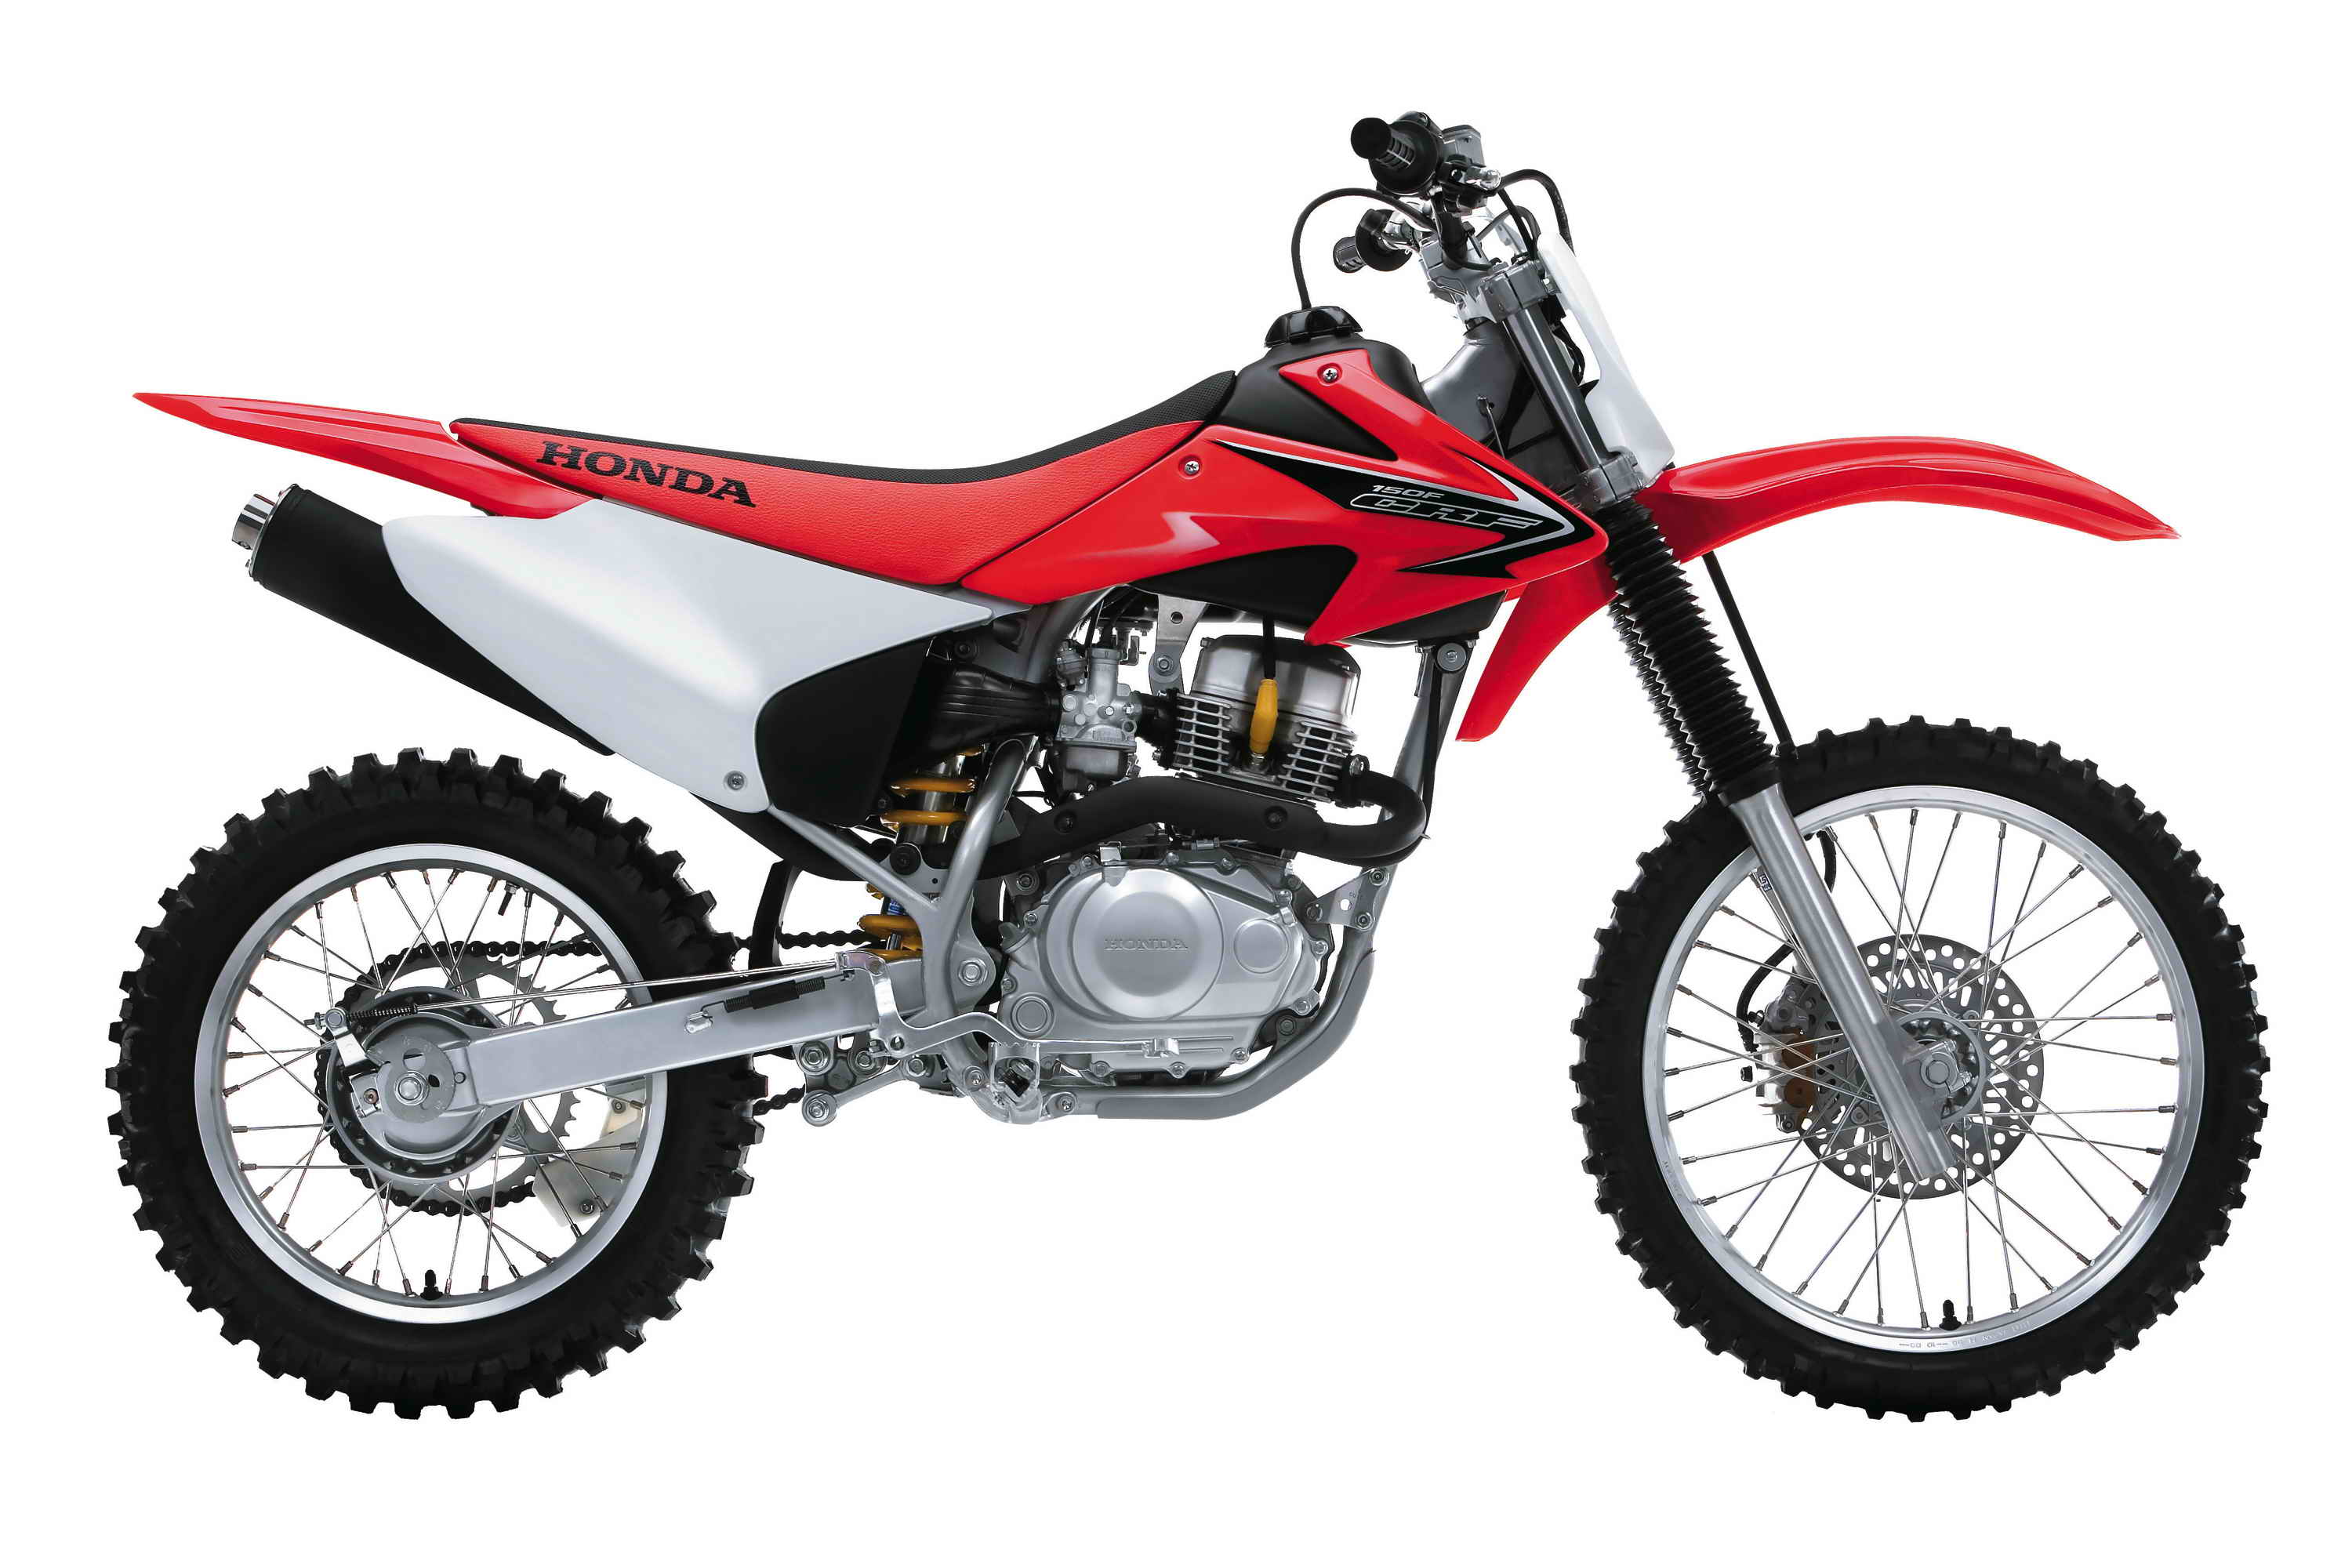 2008 Honda CRF150F | Top Speed. »